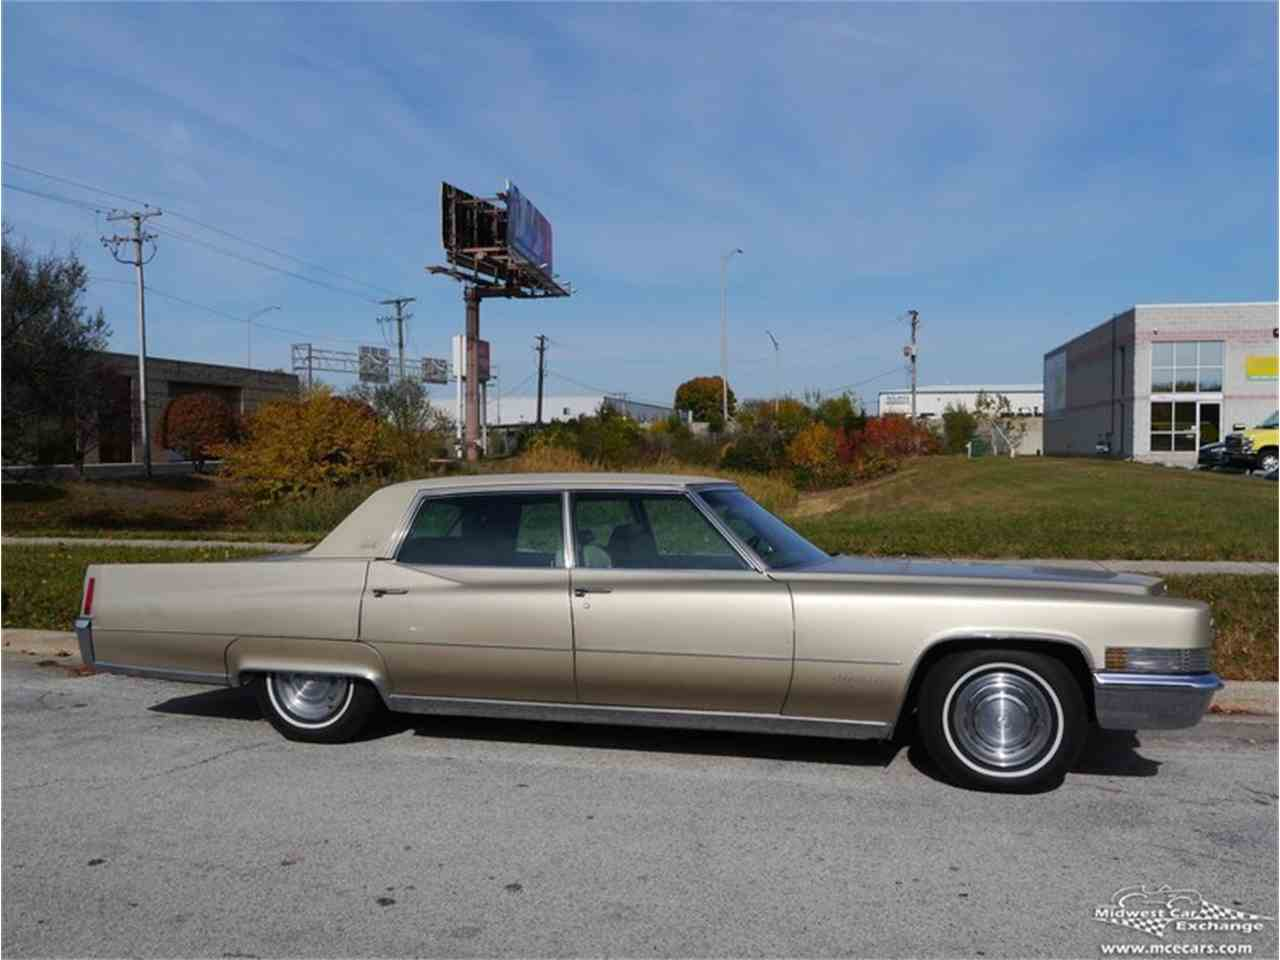 Large Picture of 1970 Cadillac Fleetwood Brougham located in Illinois - $12,900.00 Offered by Midwest Car Exchange - M9KI